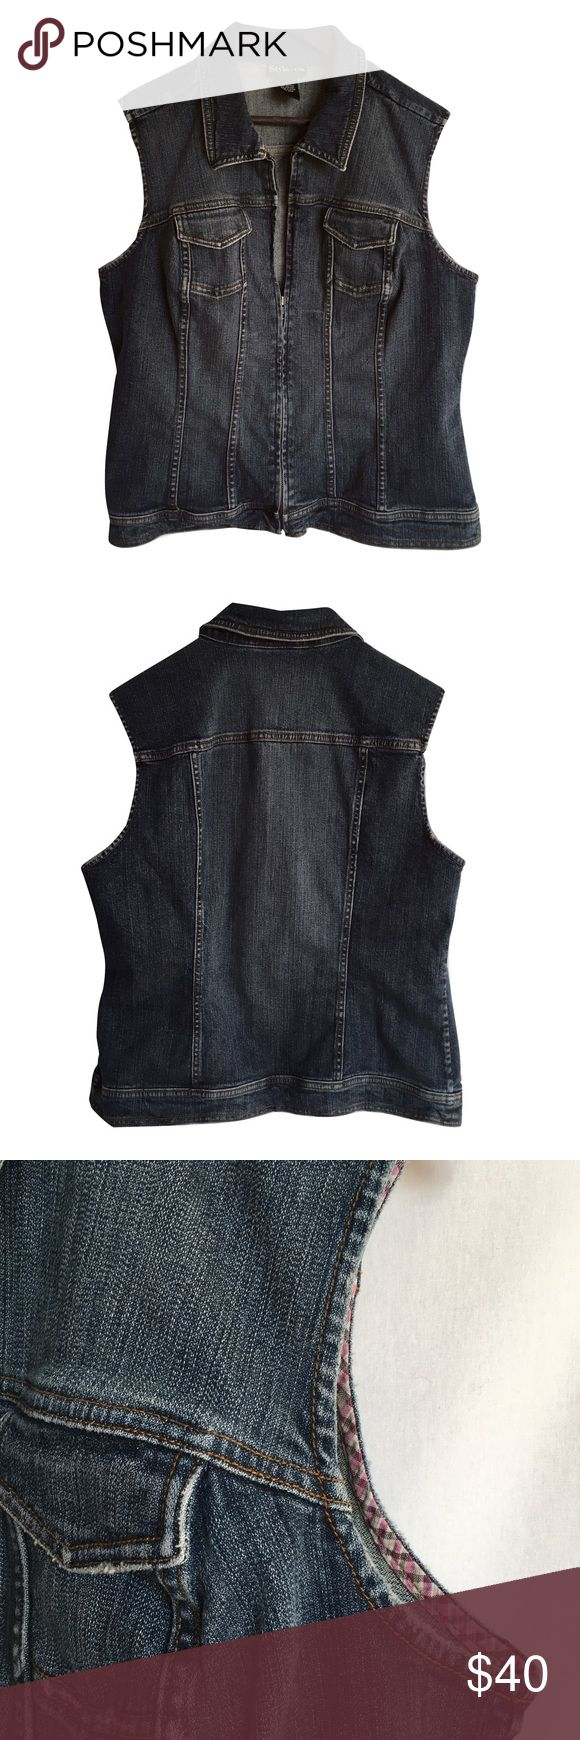 """Style & Co. Sleeveless Denim Jacket / Vest Super cuter Style & Co. distressed denim vest.  Timeless wardrobe staple piece that's perfect for layering. Front zipper closure with two small chest pockets.   Perfect condition! * 98% Cotton 2% Spandex  * 24"""" long * 21.5"""" across underarm to underarm Style & Co Jackets & Coats Vests"""